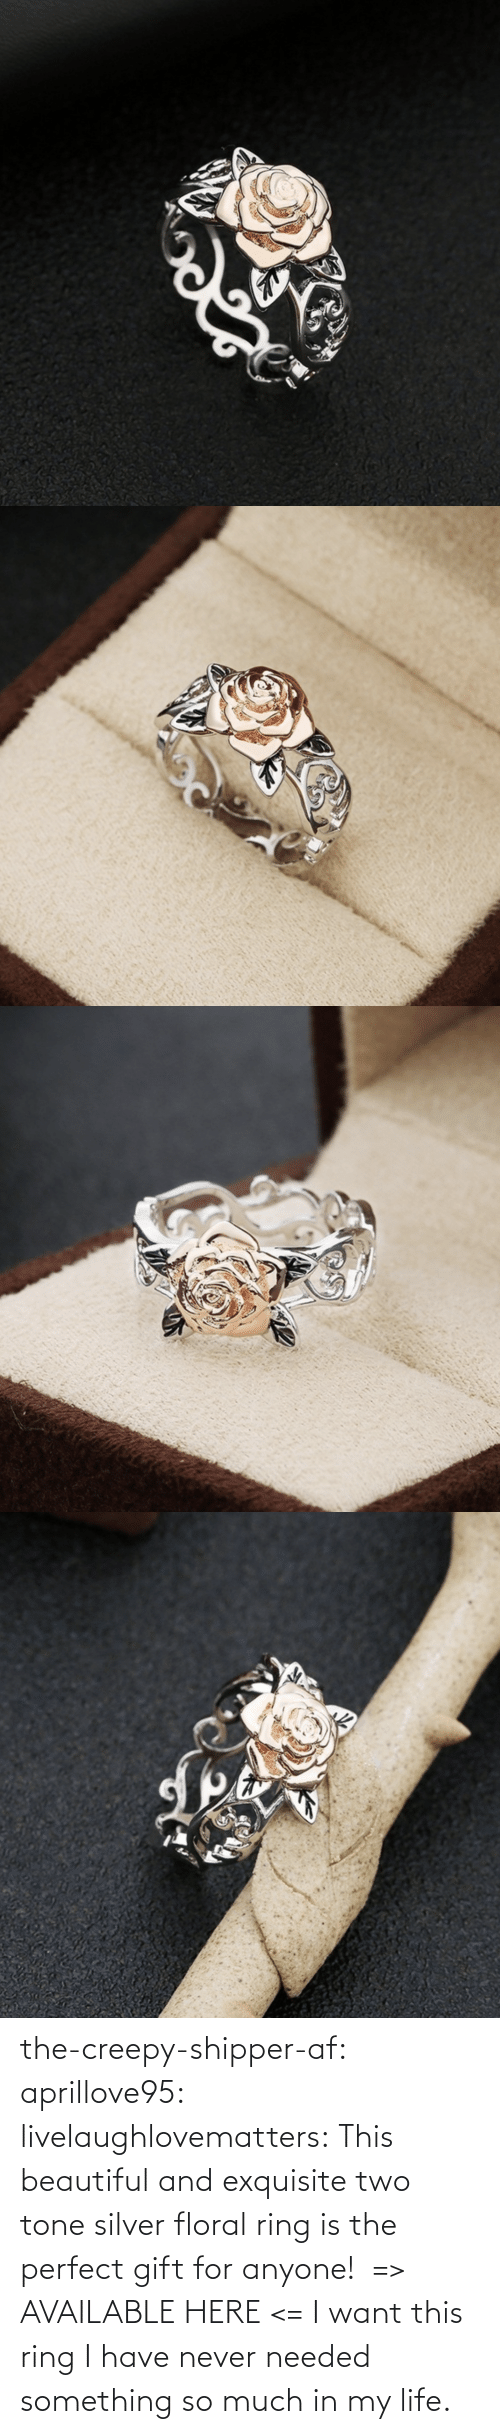 something: the-creepy-shipper-af: aprillove95:  livelaughlovematters:  This beautiful and exquisite two tone silver floral ring is the perfect gift for anyone!  => AVAILABLE HERE <=    I want this ring   I have never needed something so much in my life.